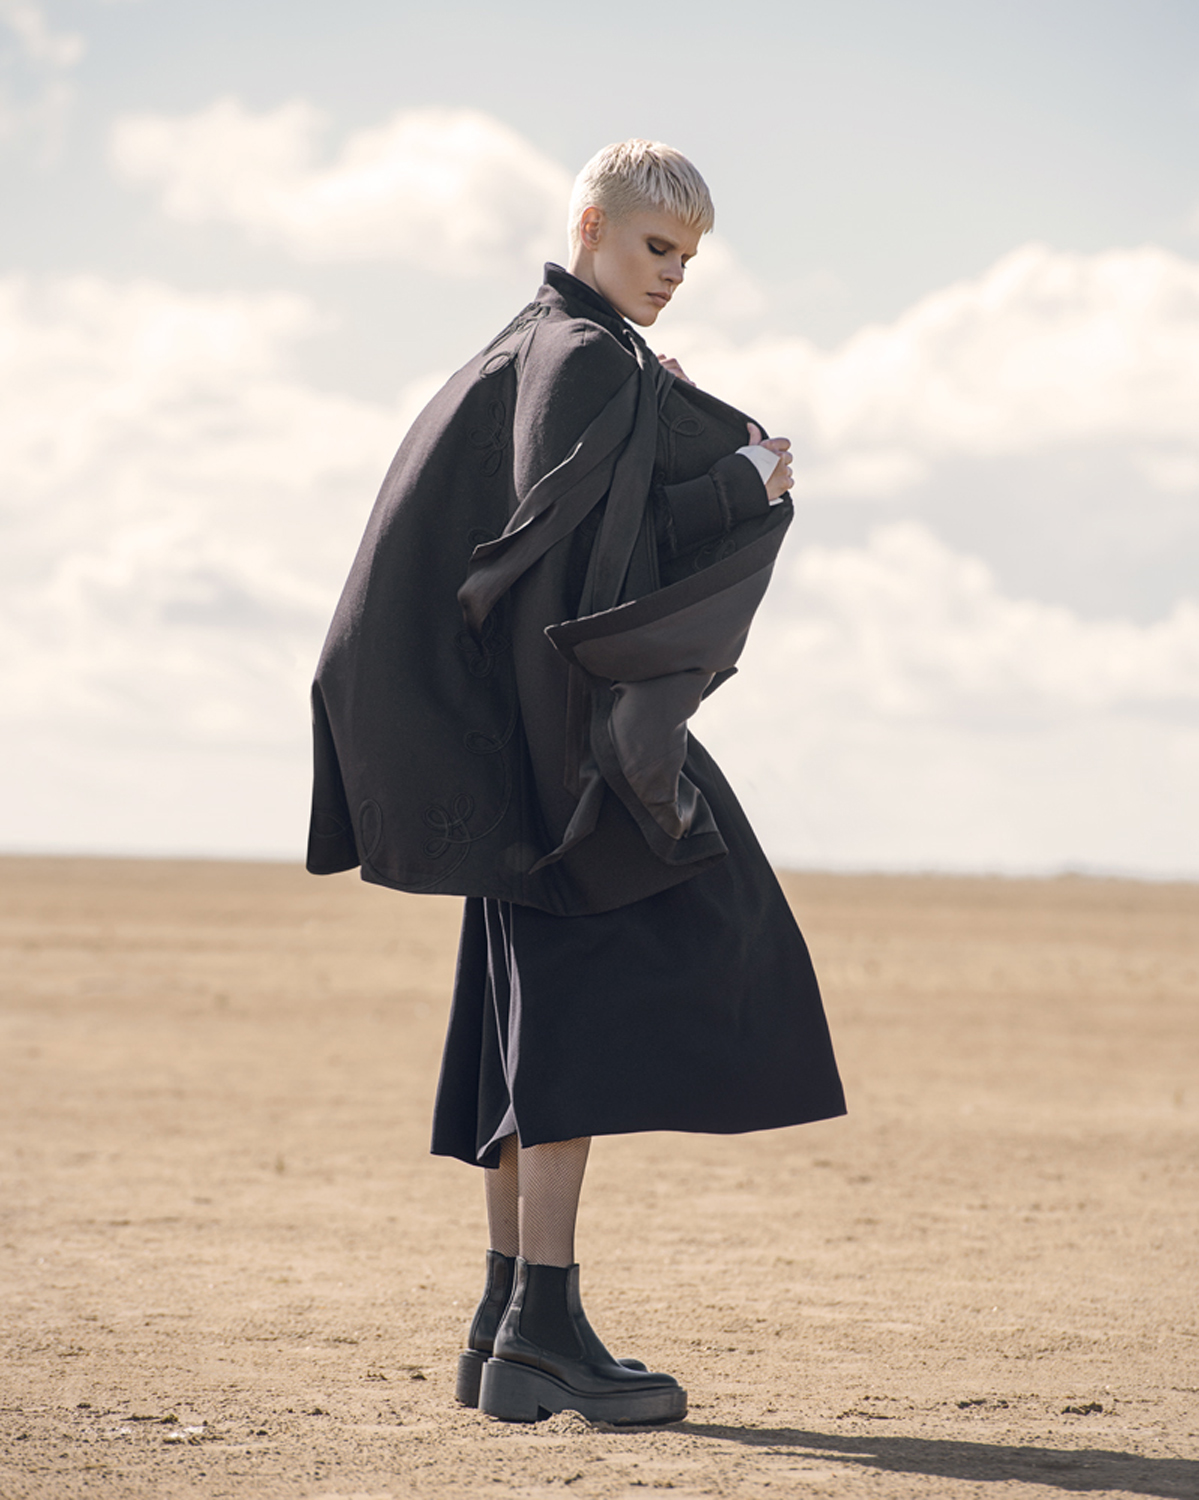 Vogue Russia 6 by Andreas ORTNER